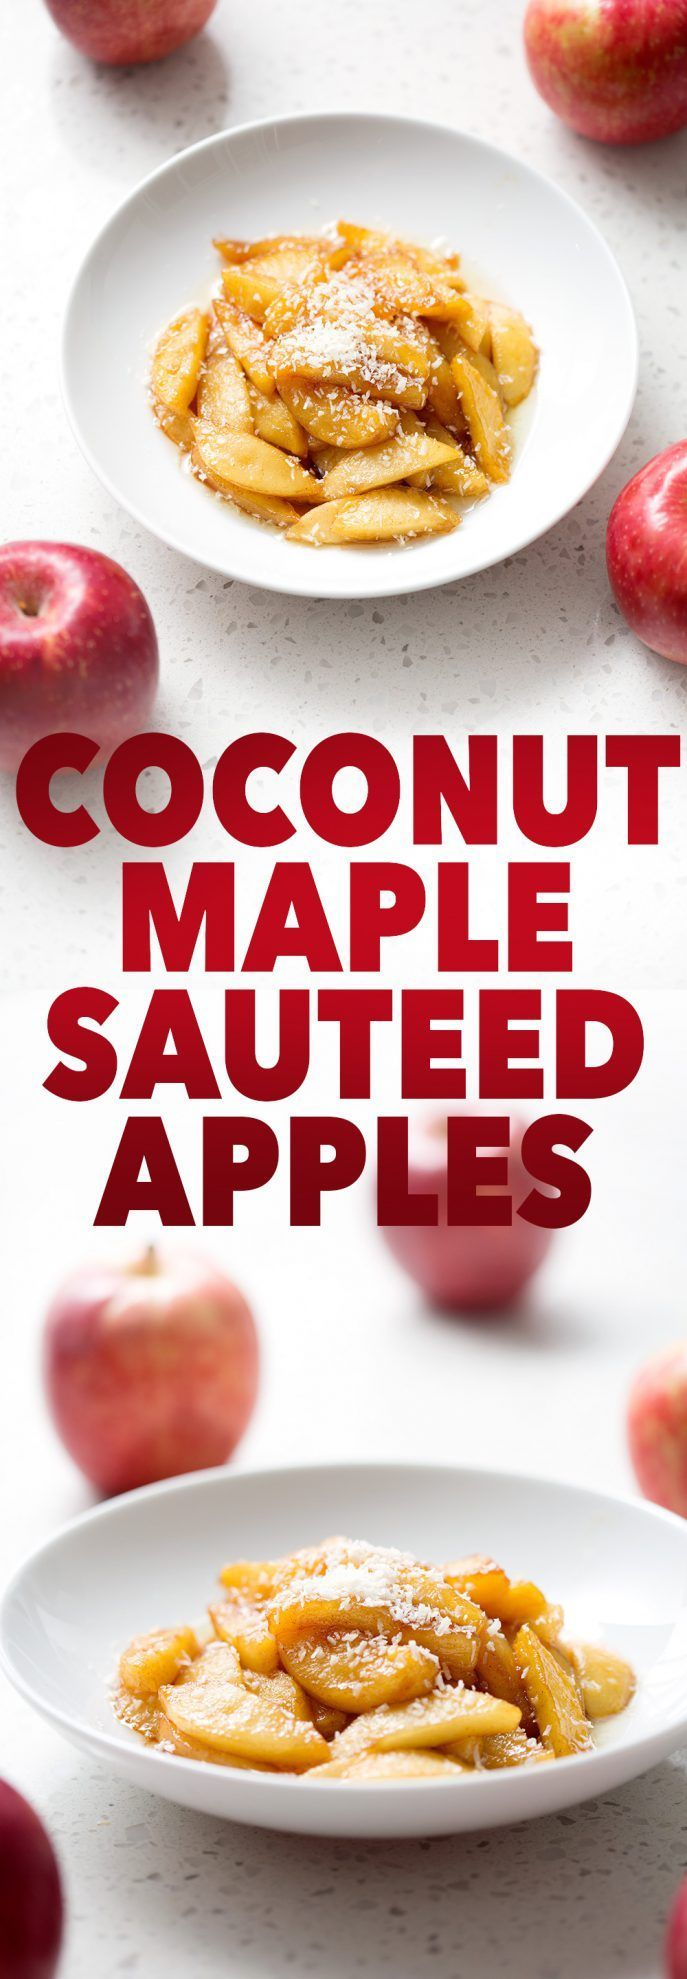 Deliciously simple 5-ingredient recipe for Coconut Maple Sautéed Apples will satisfy your sweet tooth. This recipe is allergy friendly (gluten, dairy, shellfish, nut, egg, and soy free) and suits the autoimmune protocol (AIP), paleo and vegan diets.